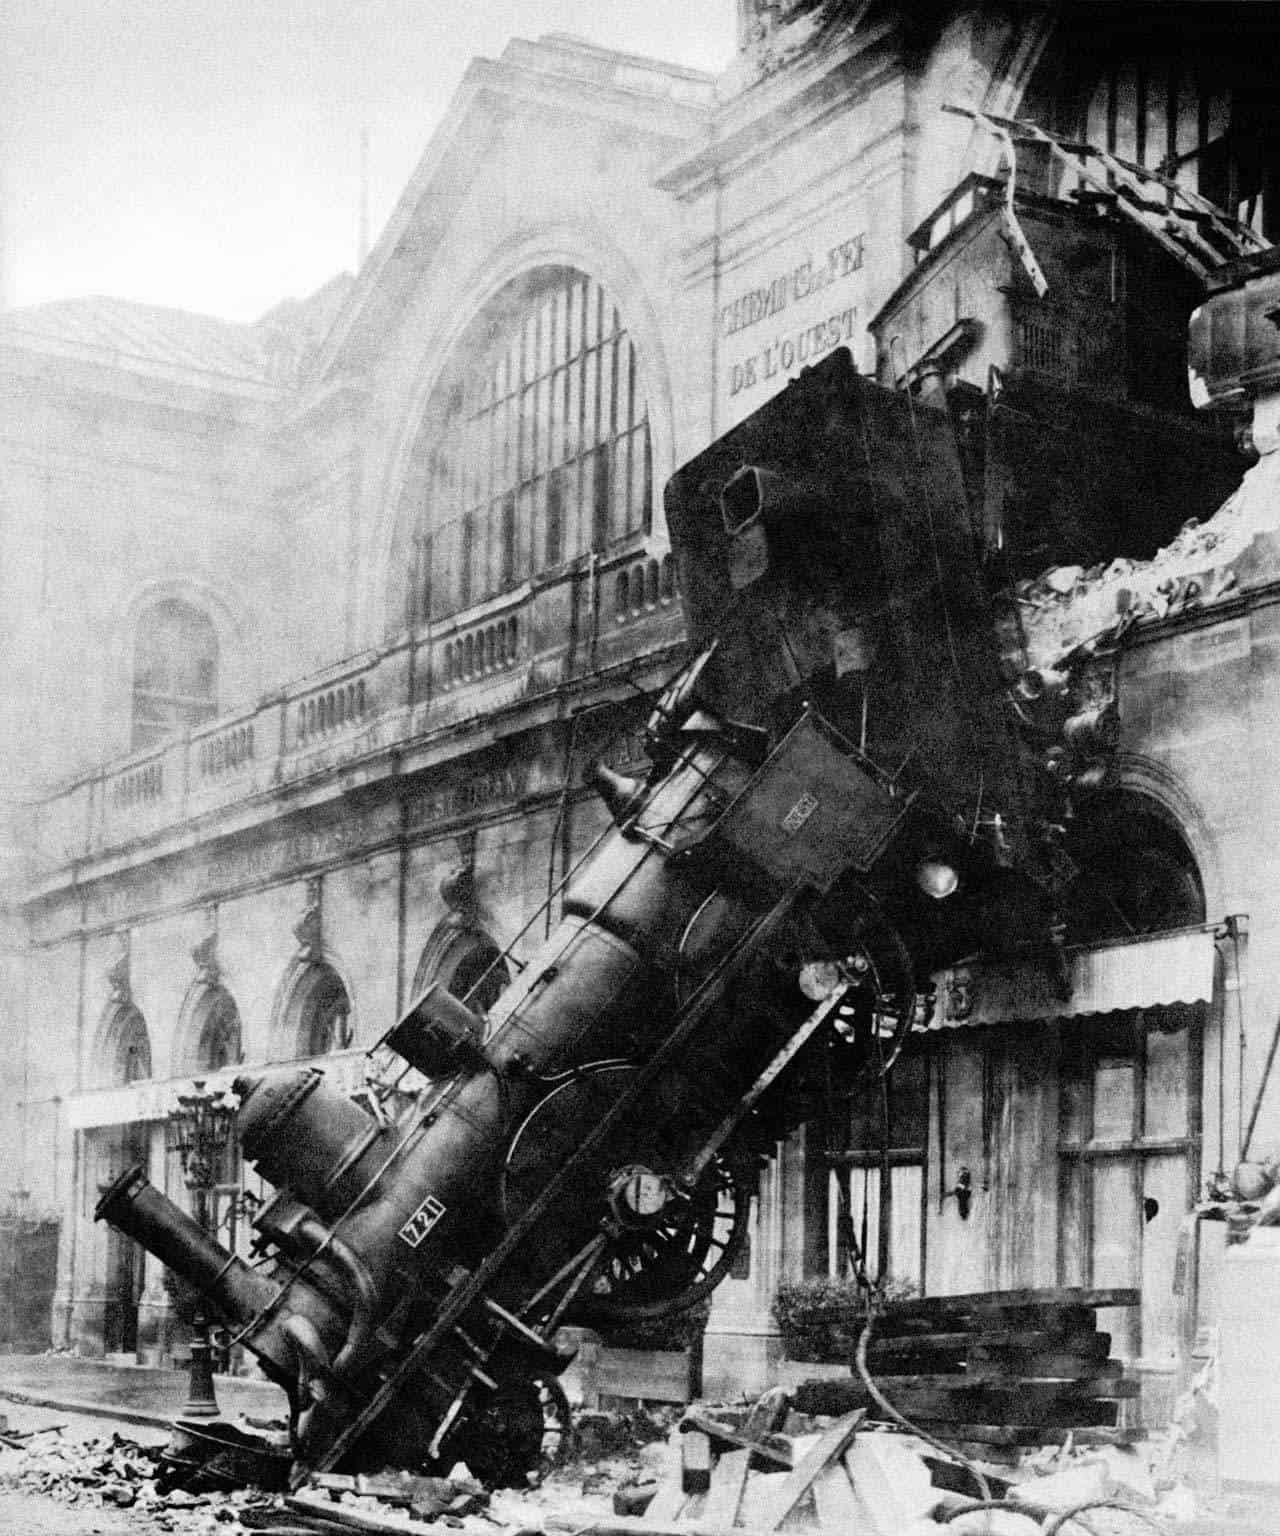 black and white photo of a failure, a train wreck